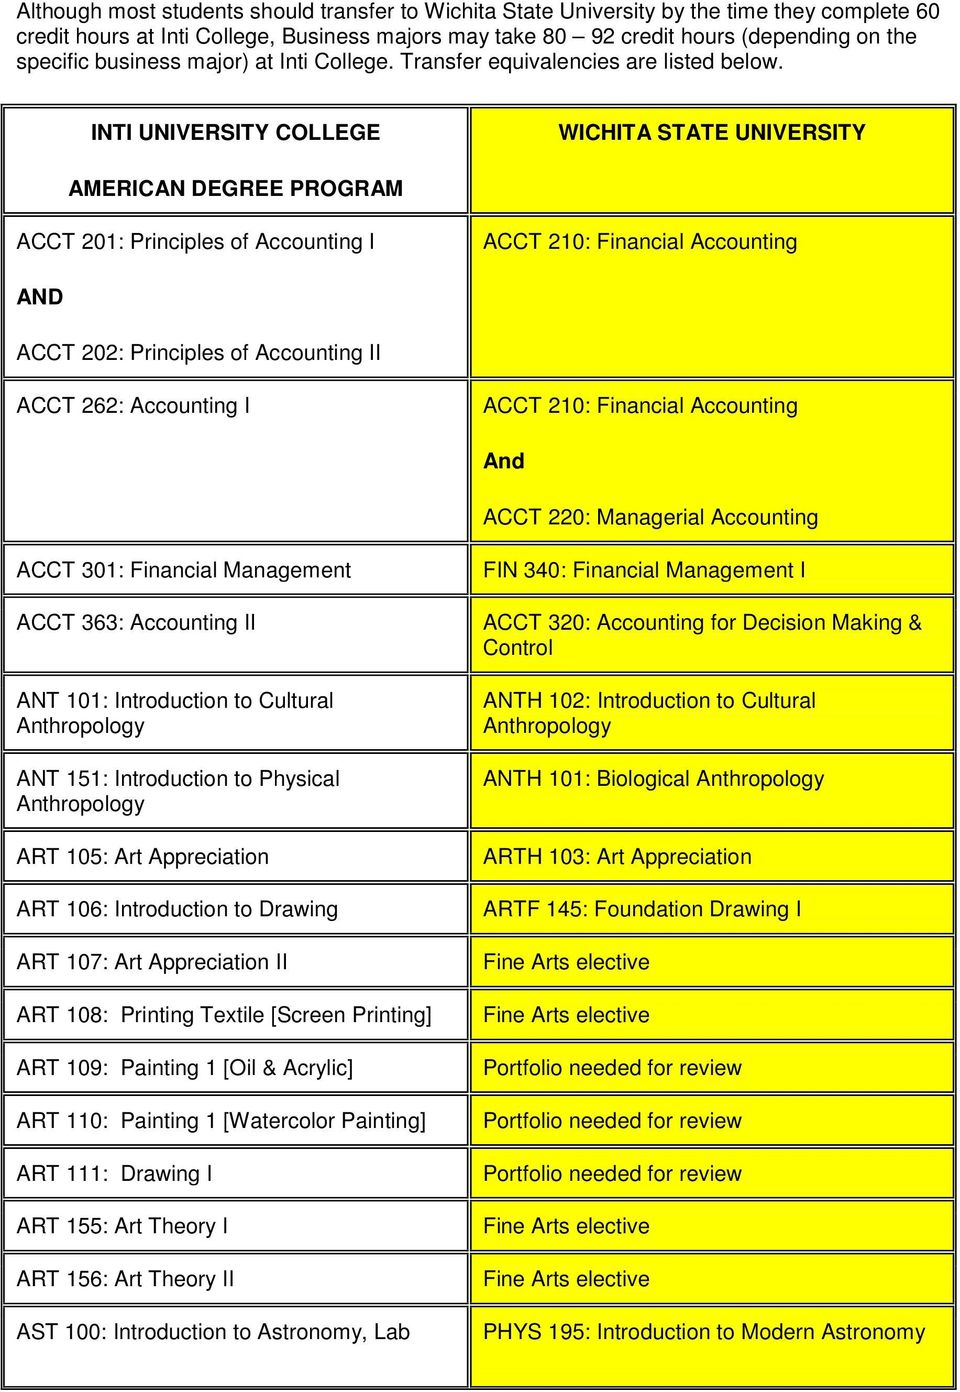 INTI UNIVERSITY COLLEGE WICHITA STATE UNIVERSITY AMERICAN DEGREE PROGRAM ACCT 201: Principles of Accounting I ACCT 210: Financial Accounting AND ACCT 202: Principles of Accounting II ACCT 262: